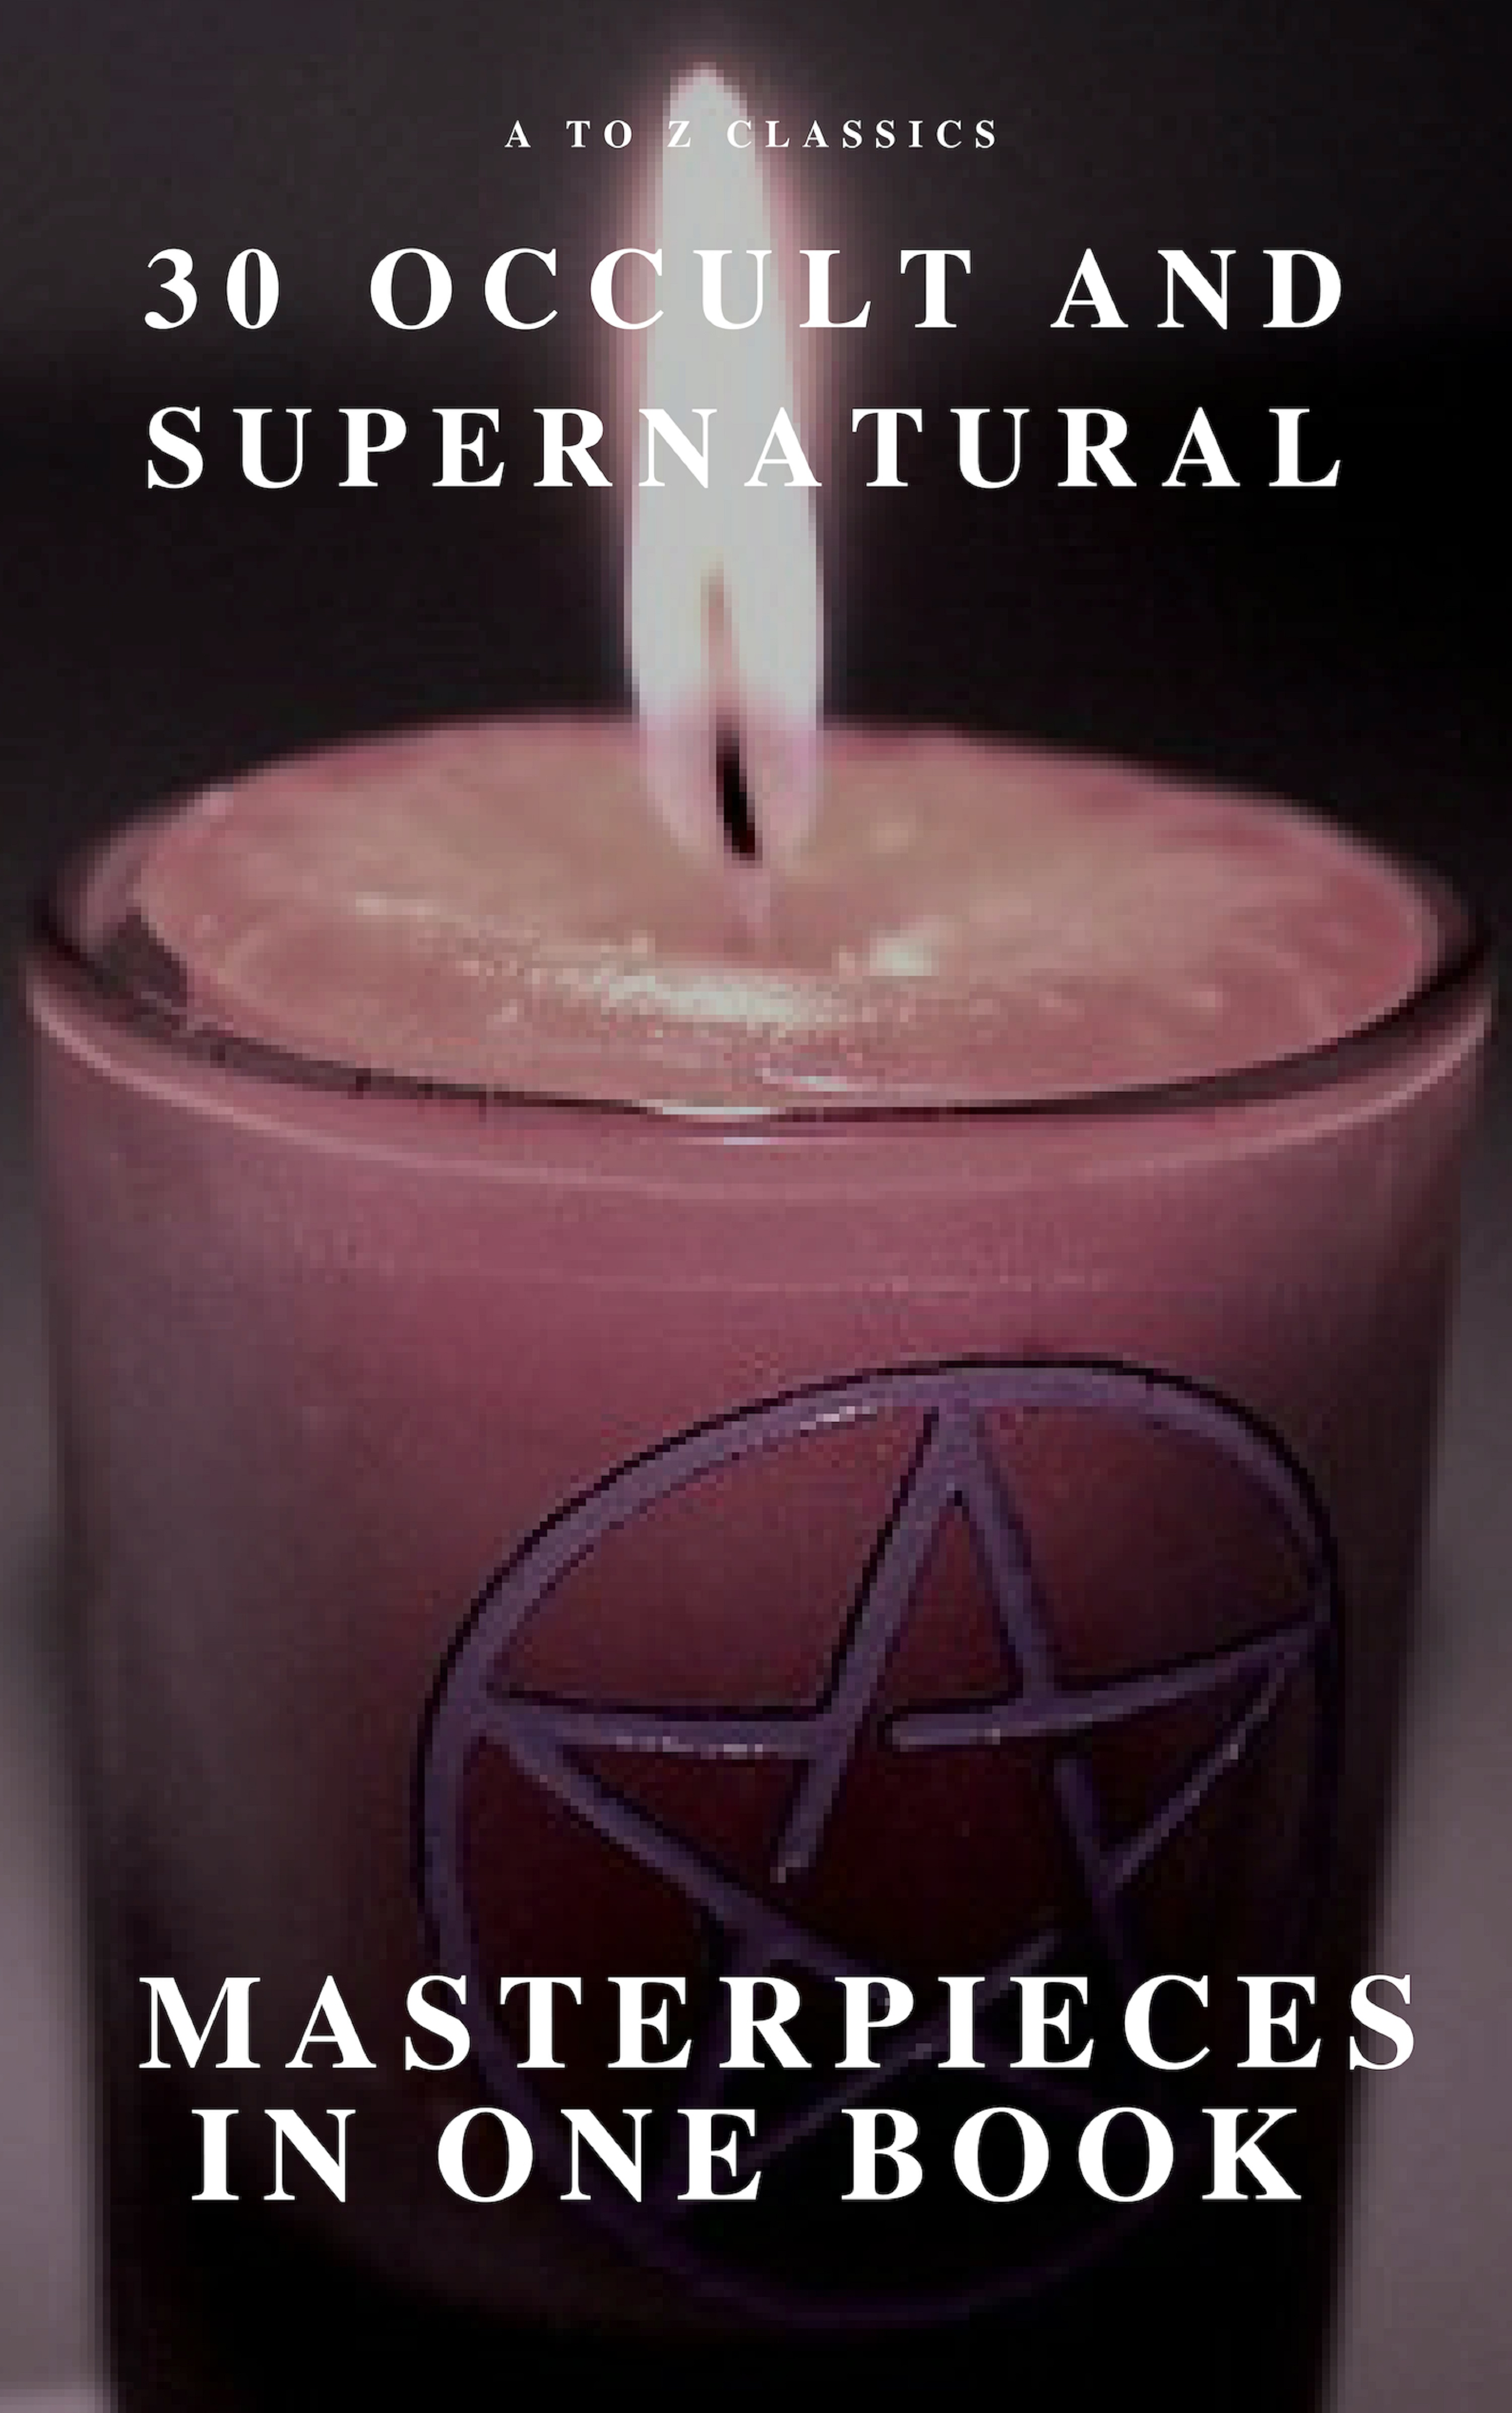 30 occult and supernatural masterpieces in one book a to z classics